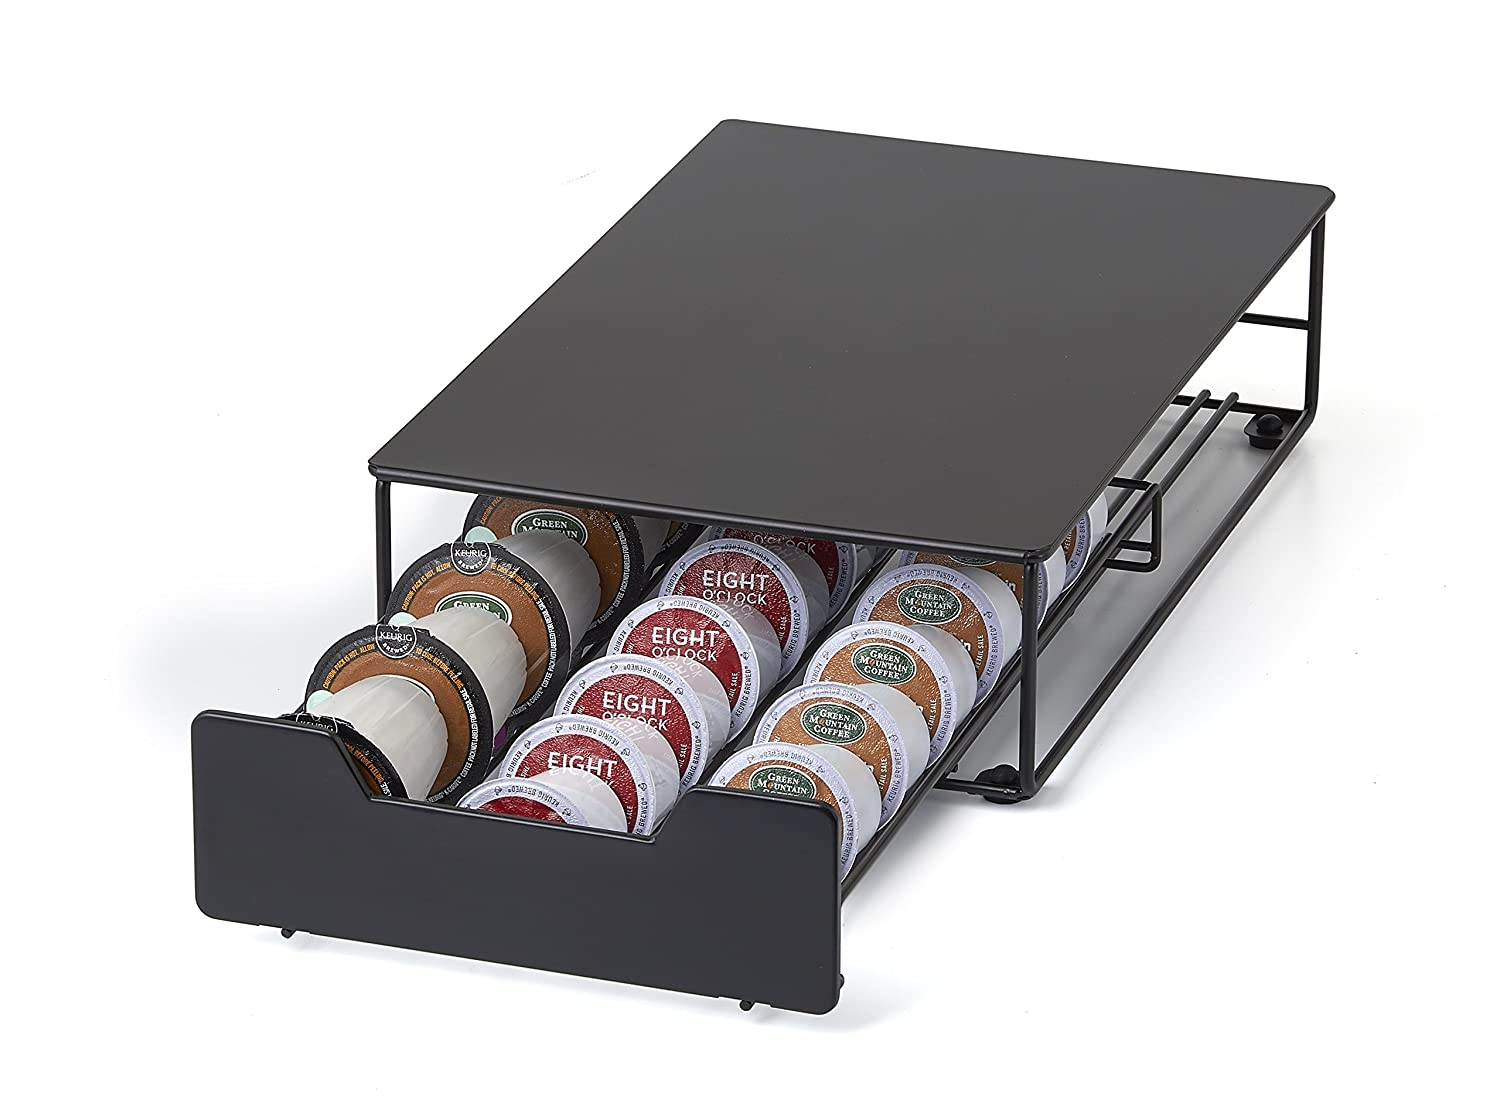 NIFTY KB6530 Mini Storage Drawer for Keurig 2.0, Black